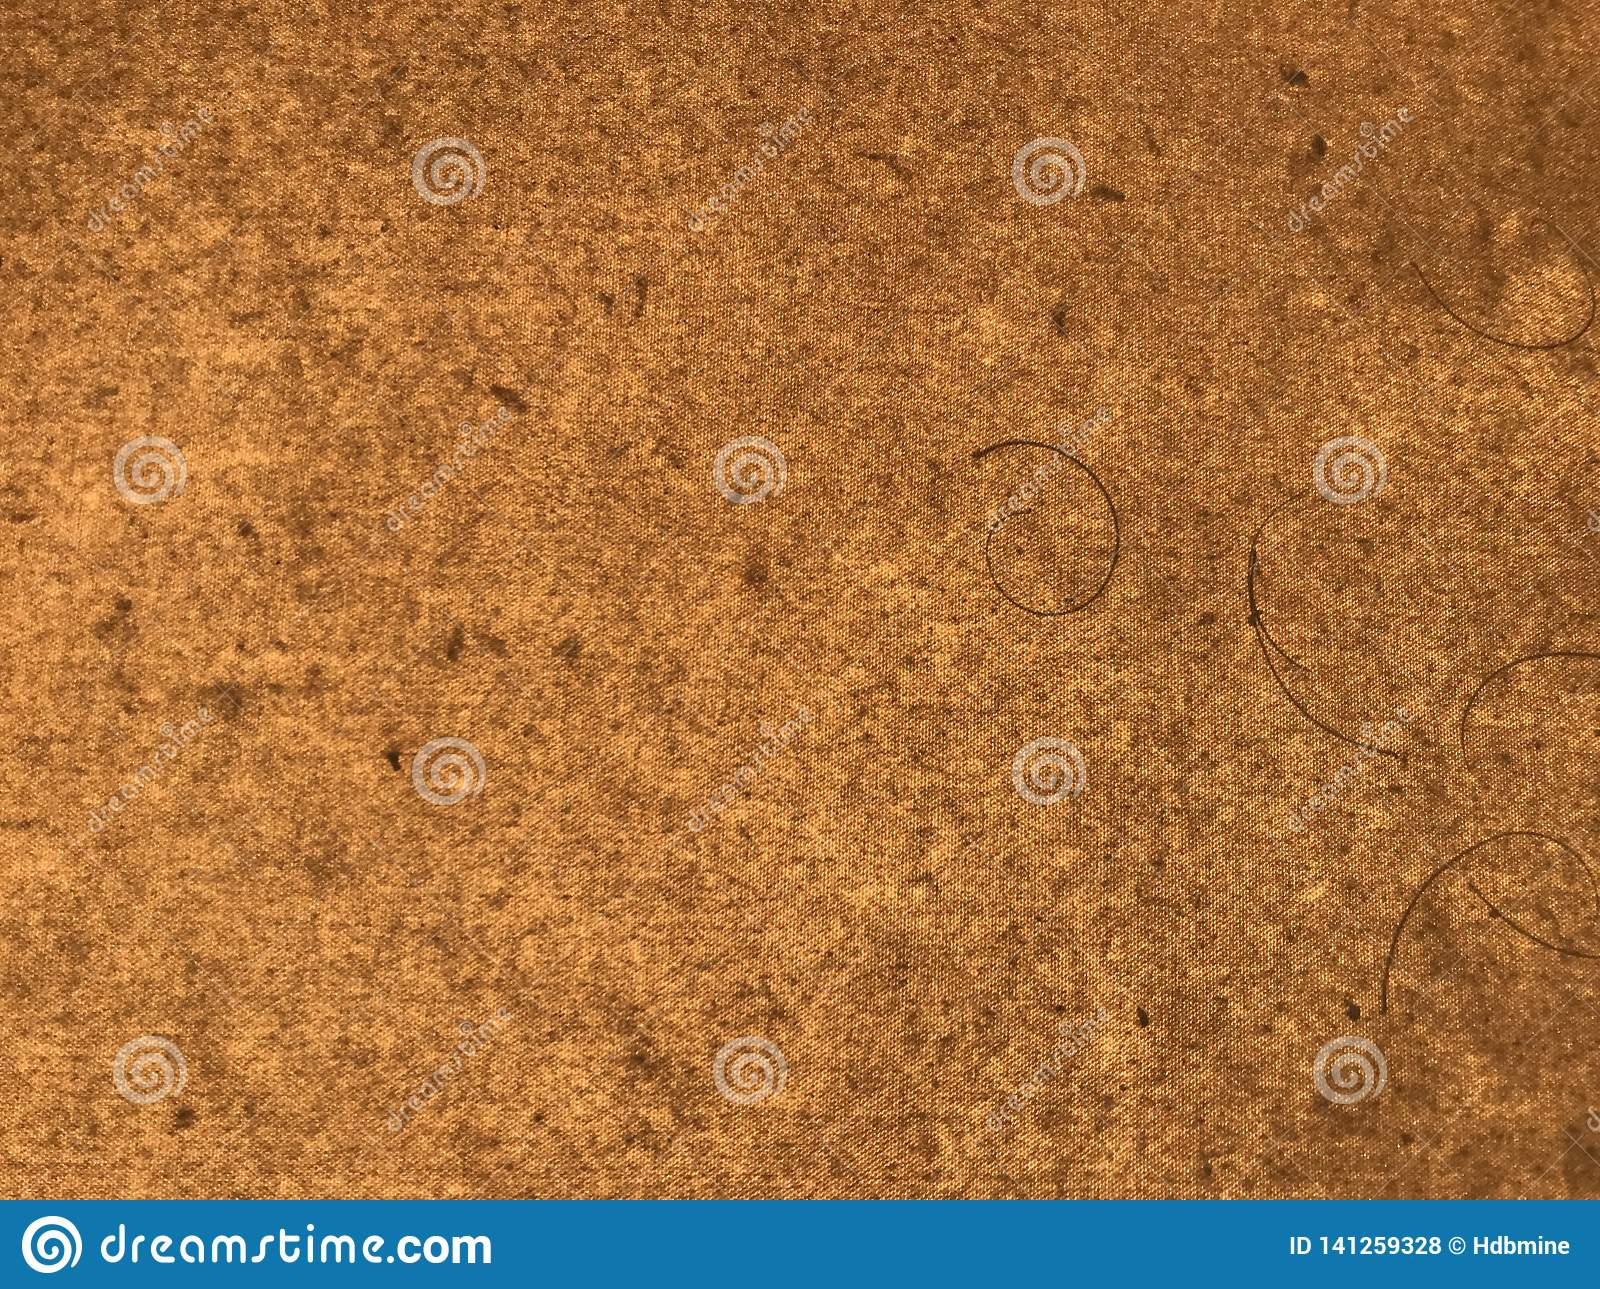 Brown mulberry paper with many lines and dots